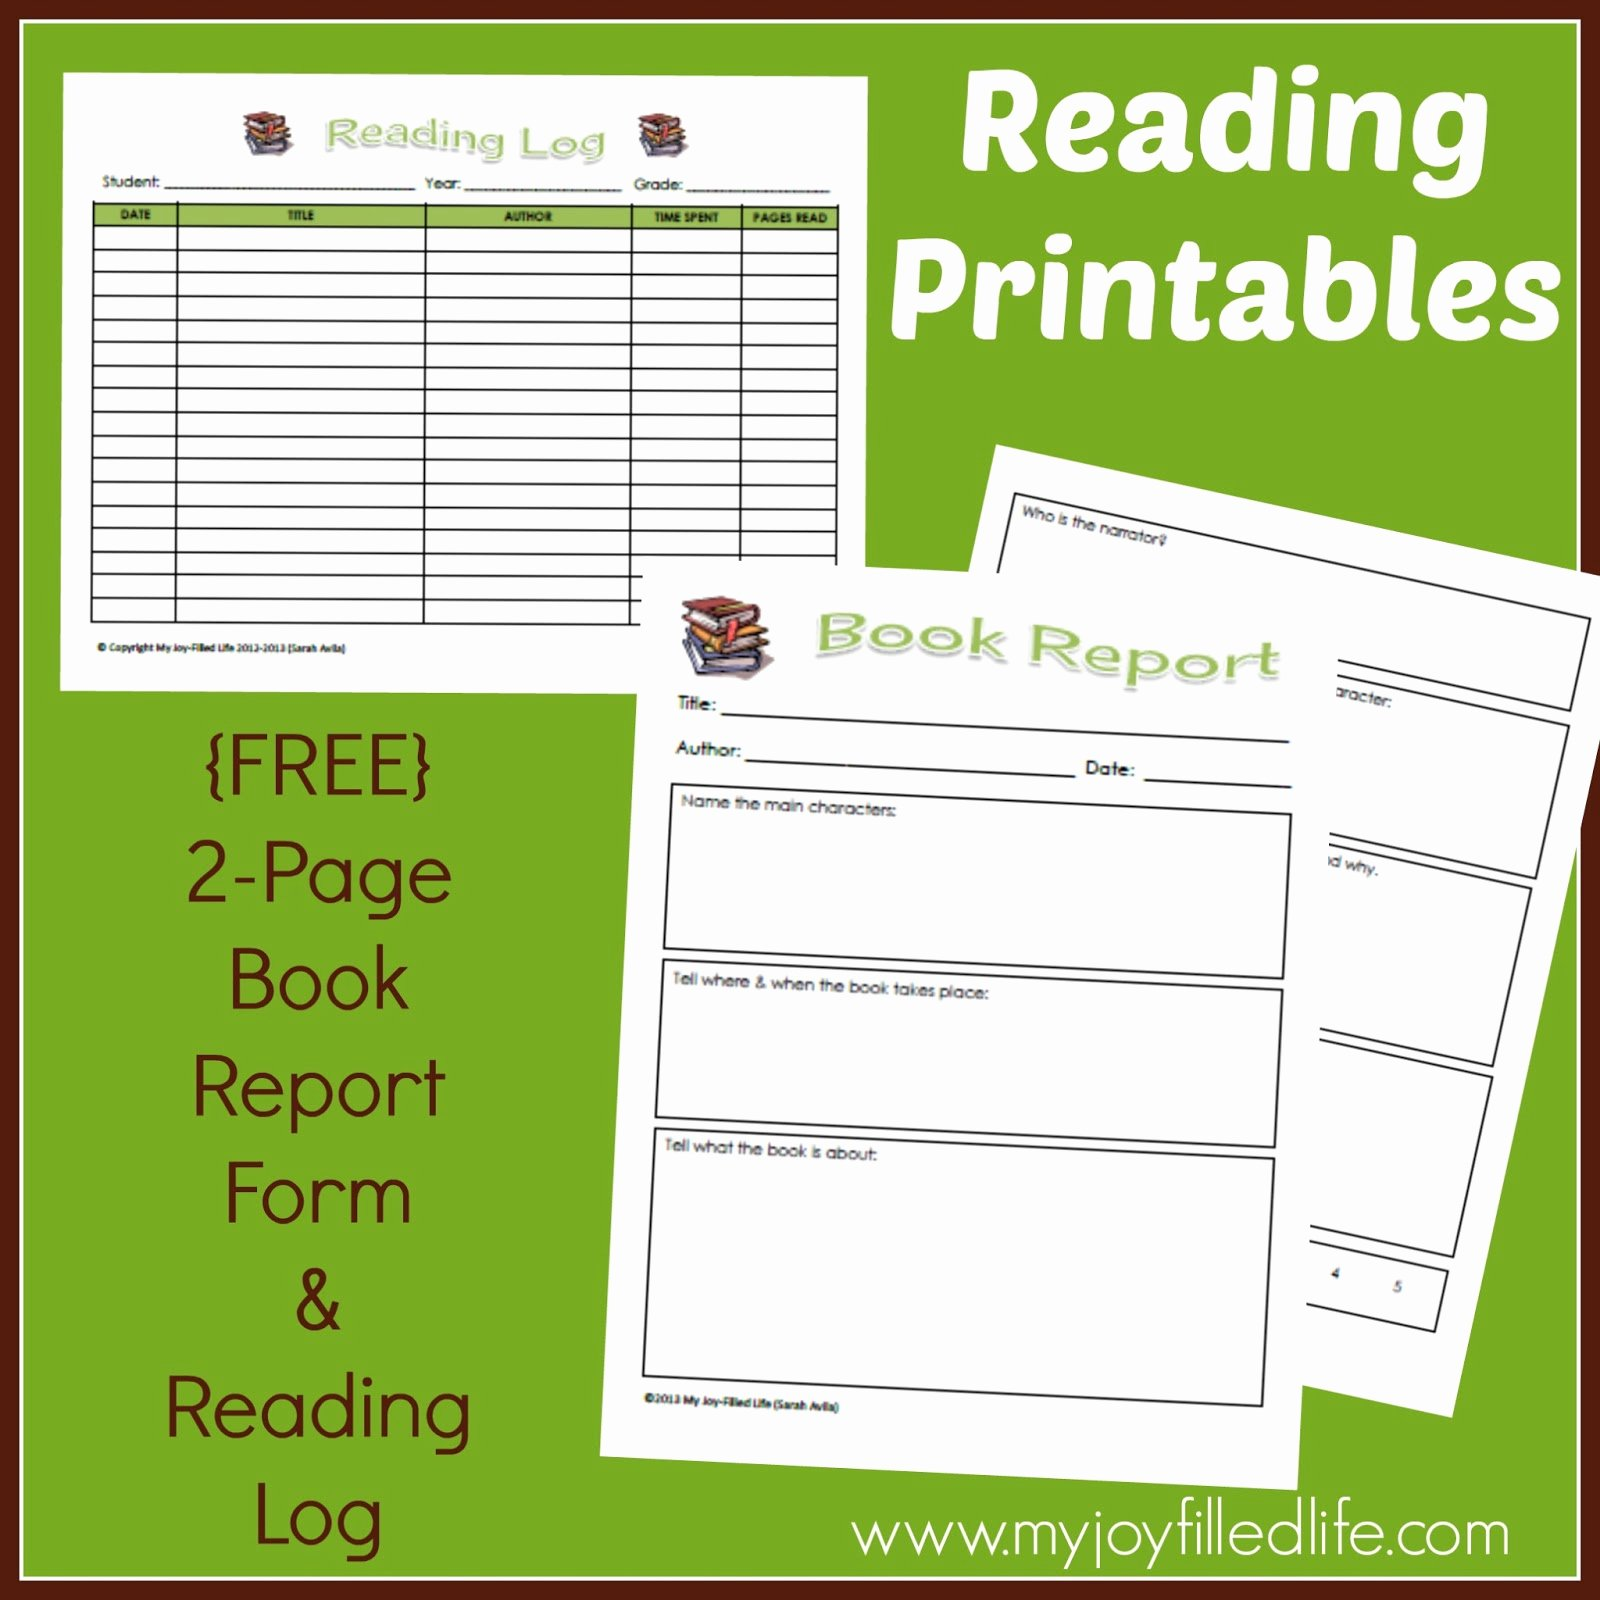 Printable Book Report forms Beautiful Free Reading Log & Book Report form My Joy Filled Life